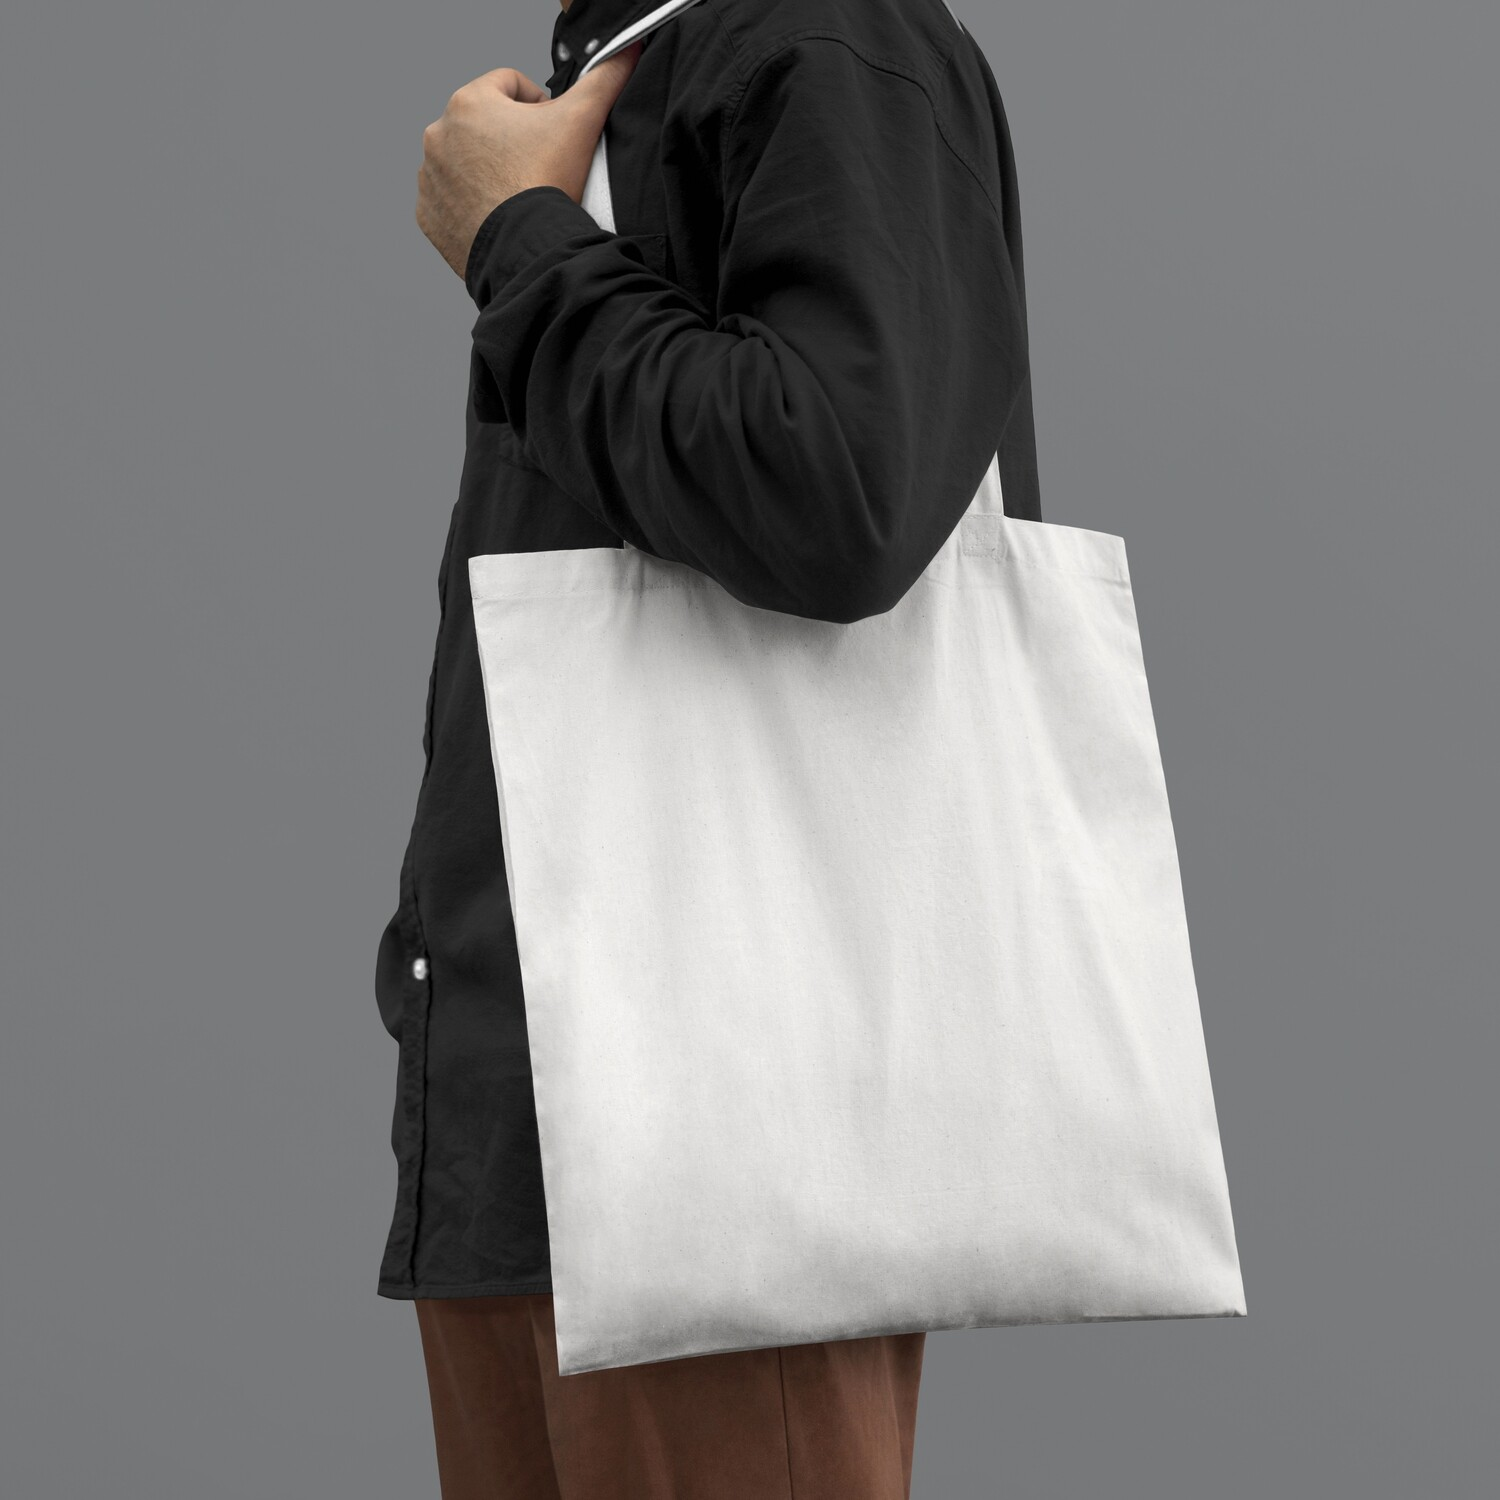 AWC Logo Grocery Tote